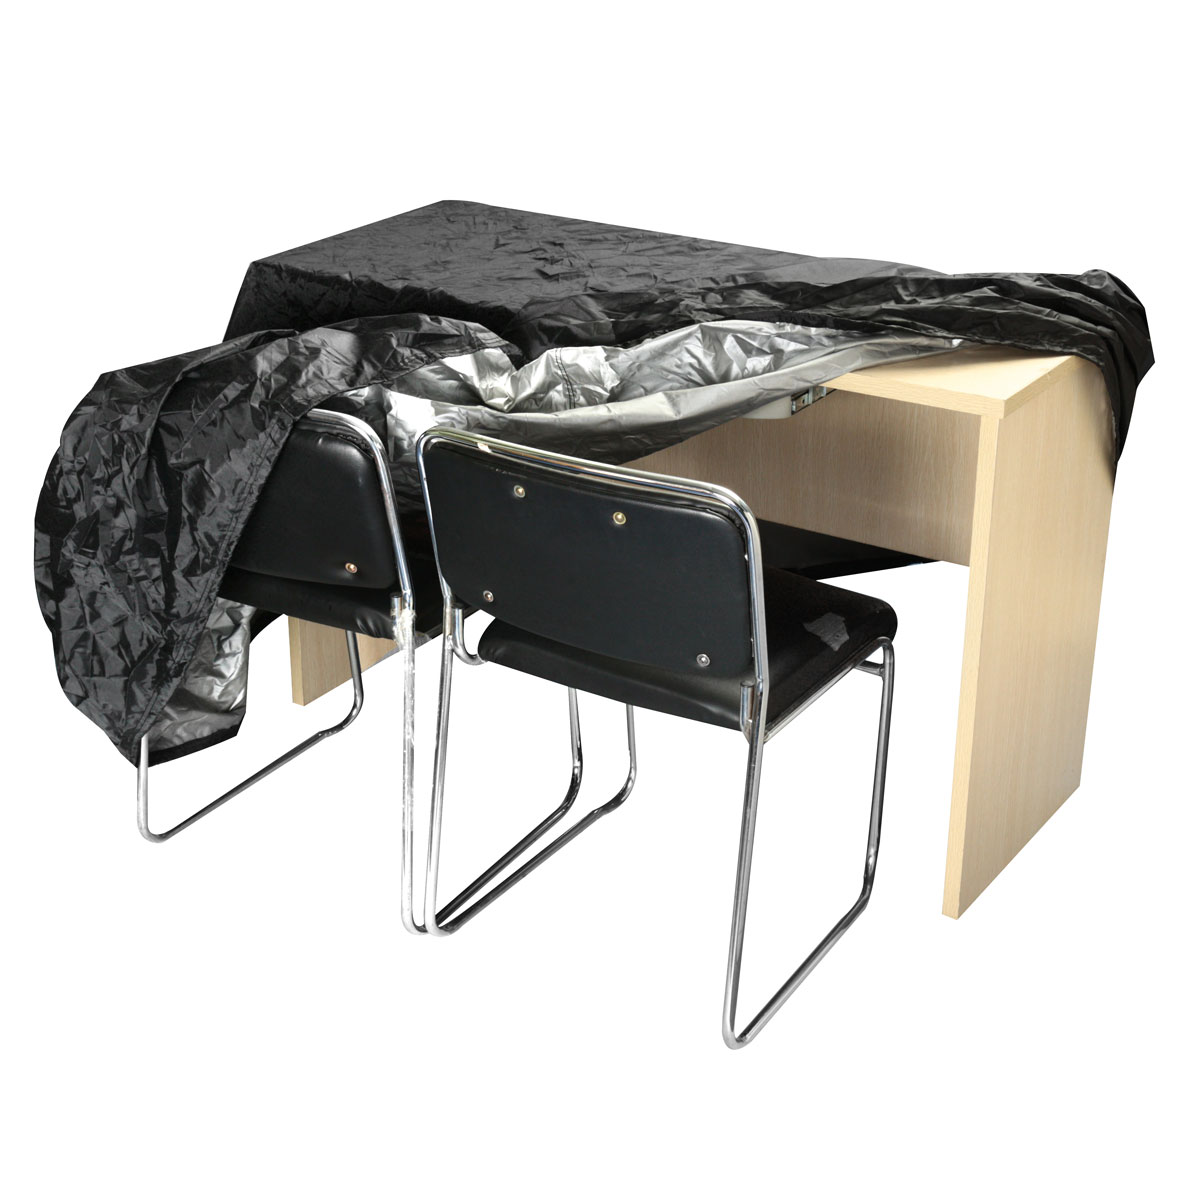 waterproof outdoor chair covers australia brookstone massage 120x120x74cm garden furniture